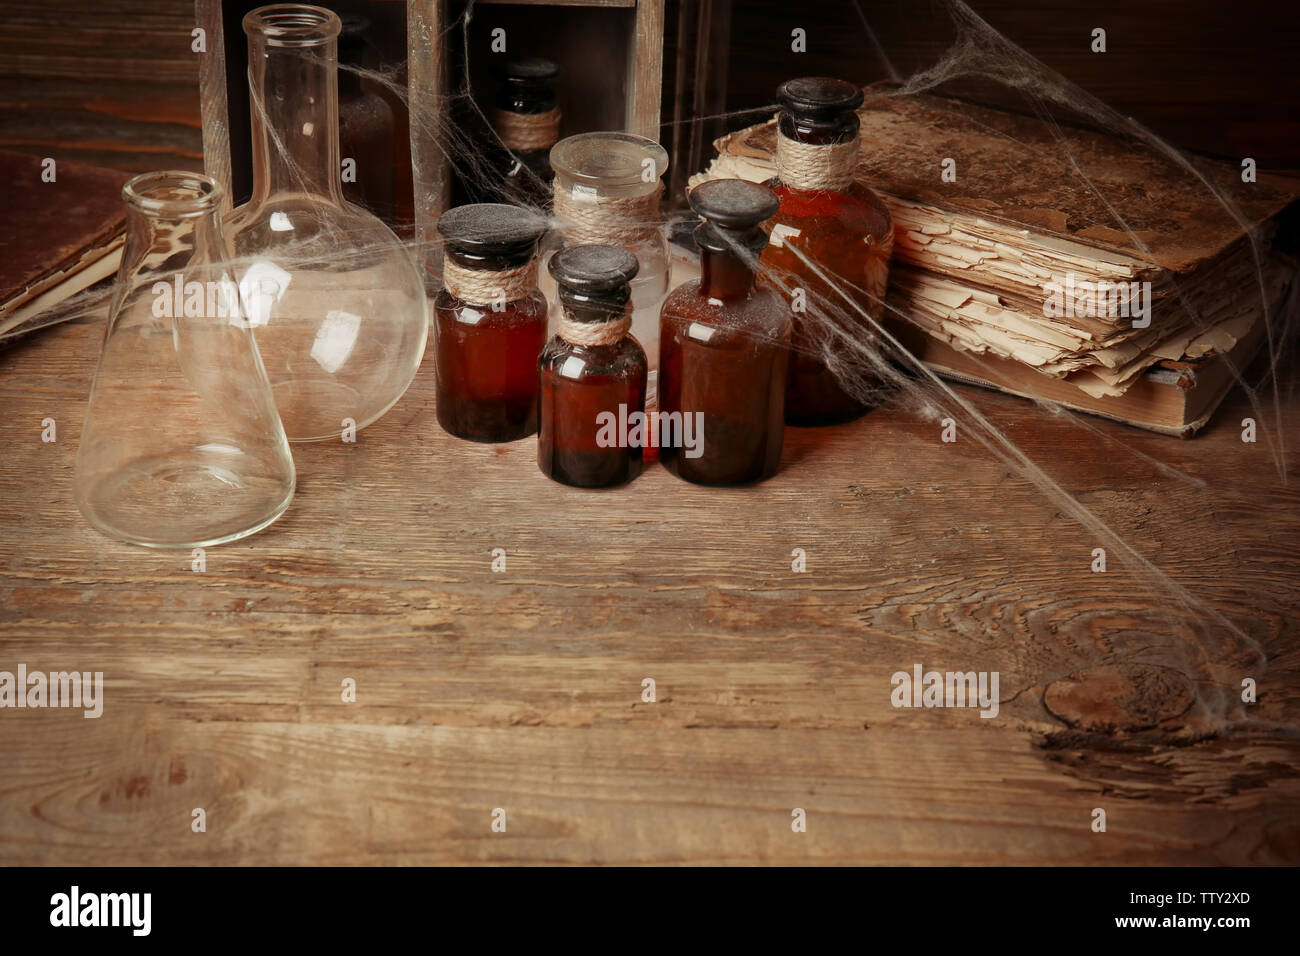 Vintage flasks and glass bottles with spiderweb on wooden background, closeup - Stock Image